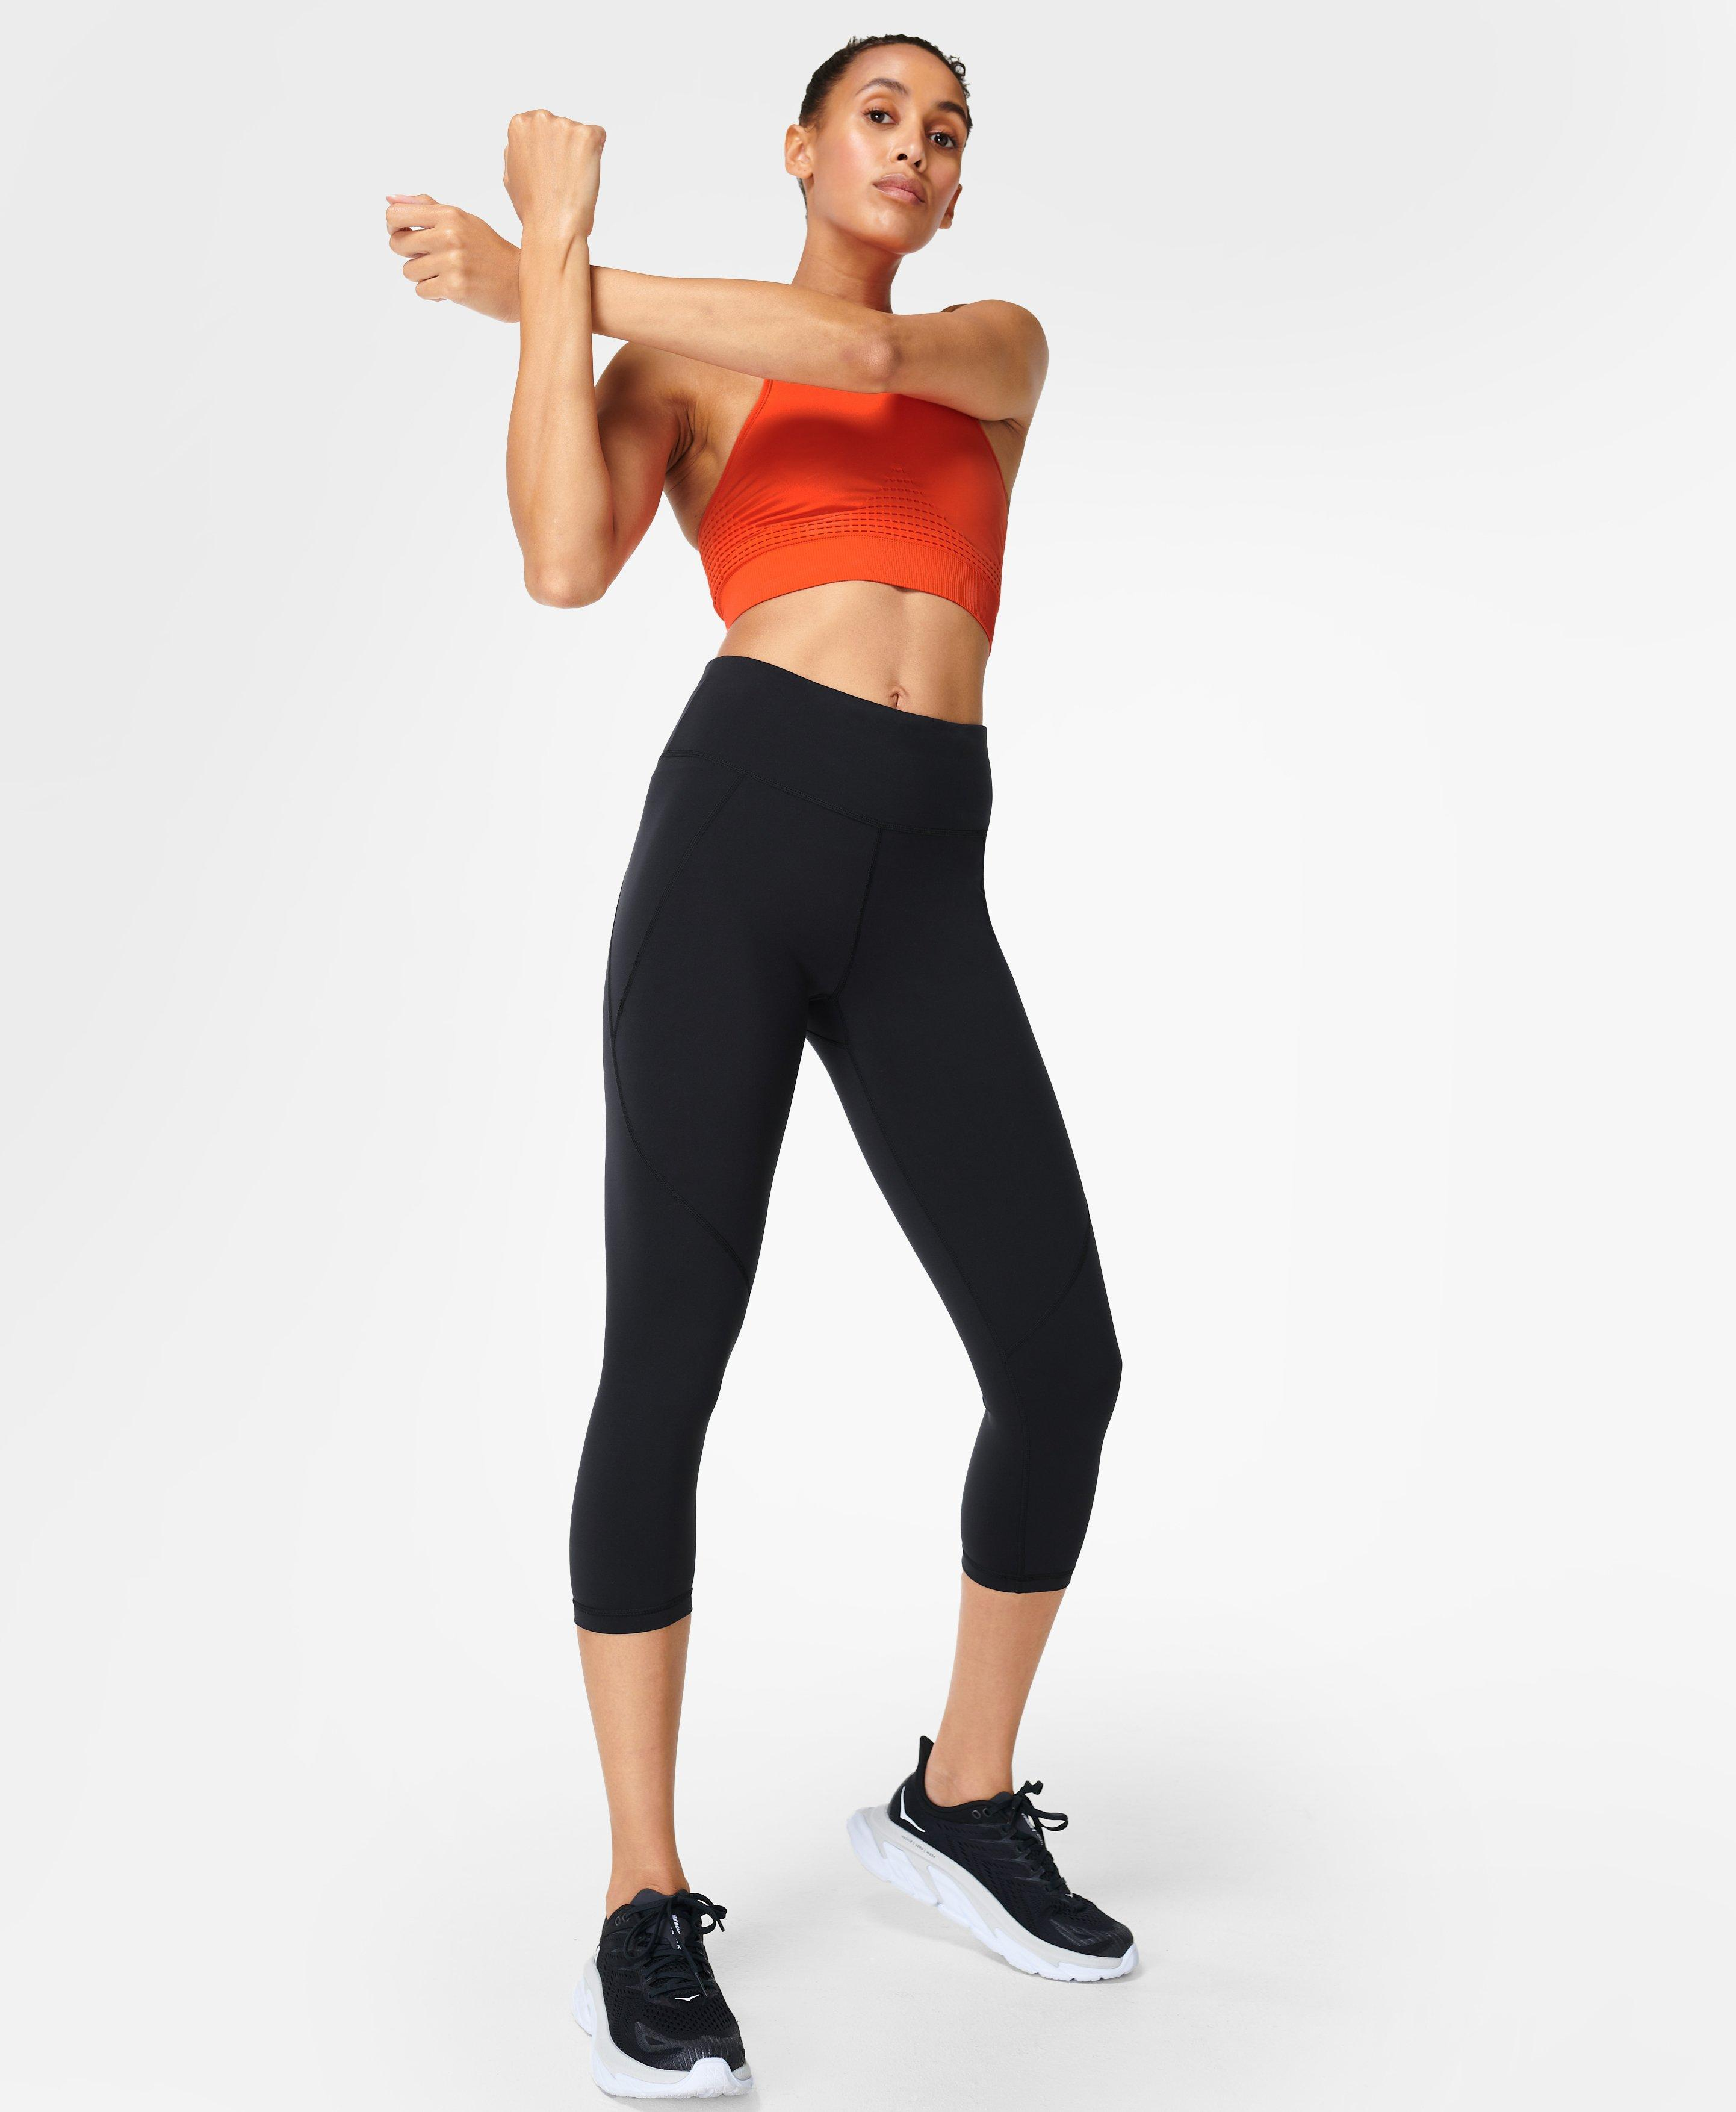 Put your phone away, these Power Crop Leggings have a side pocket AND back zip pocket to store all of your essentials. Constructed in bum-sculpting fabric that flatters where it matters they perform for over seven sports. In our cropped length with a high waist with adjustable drawcord for the perfect fit.